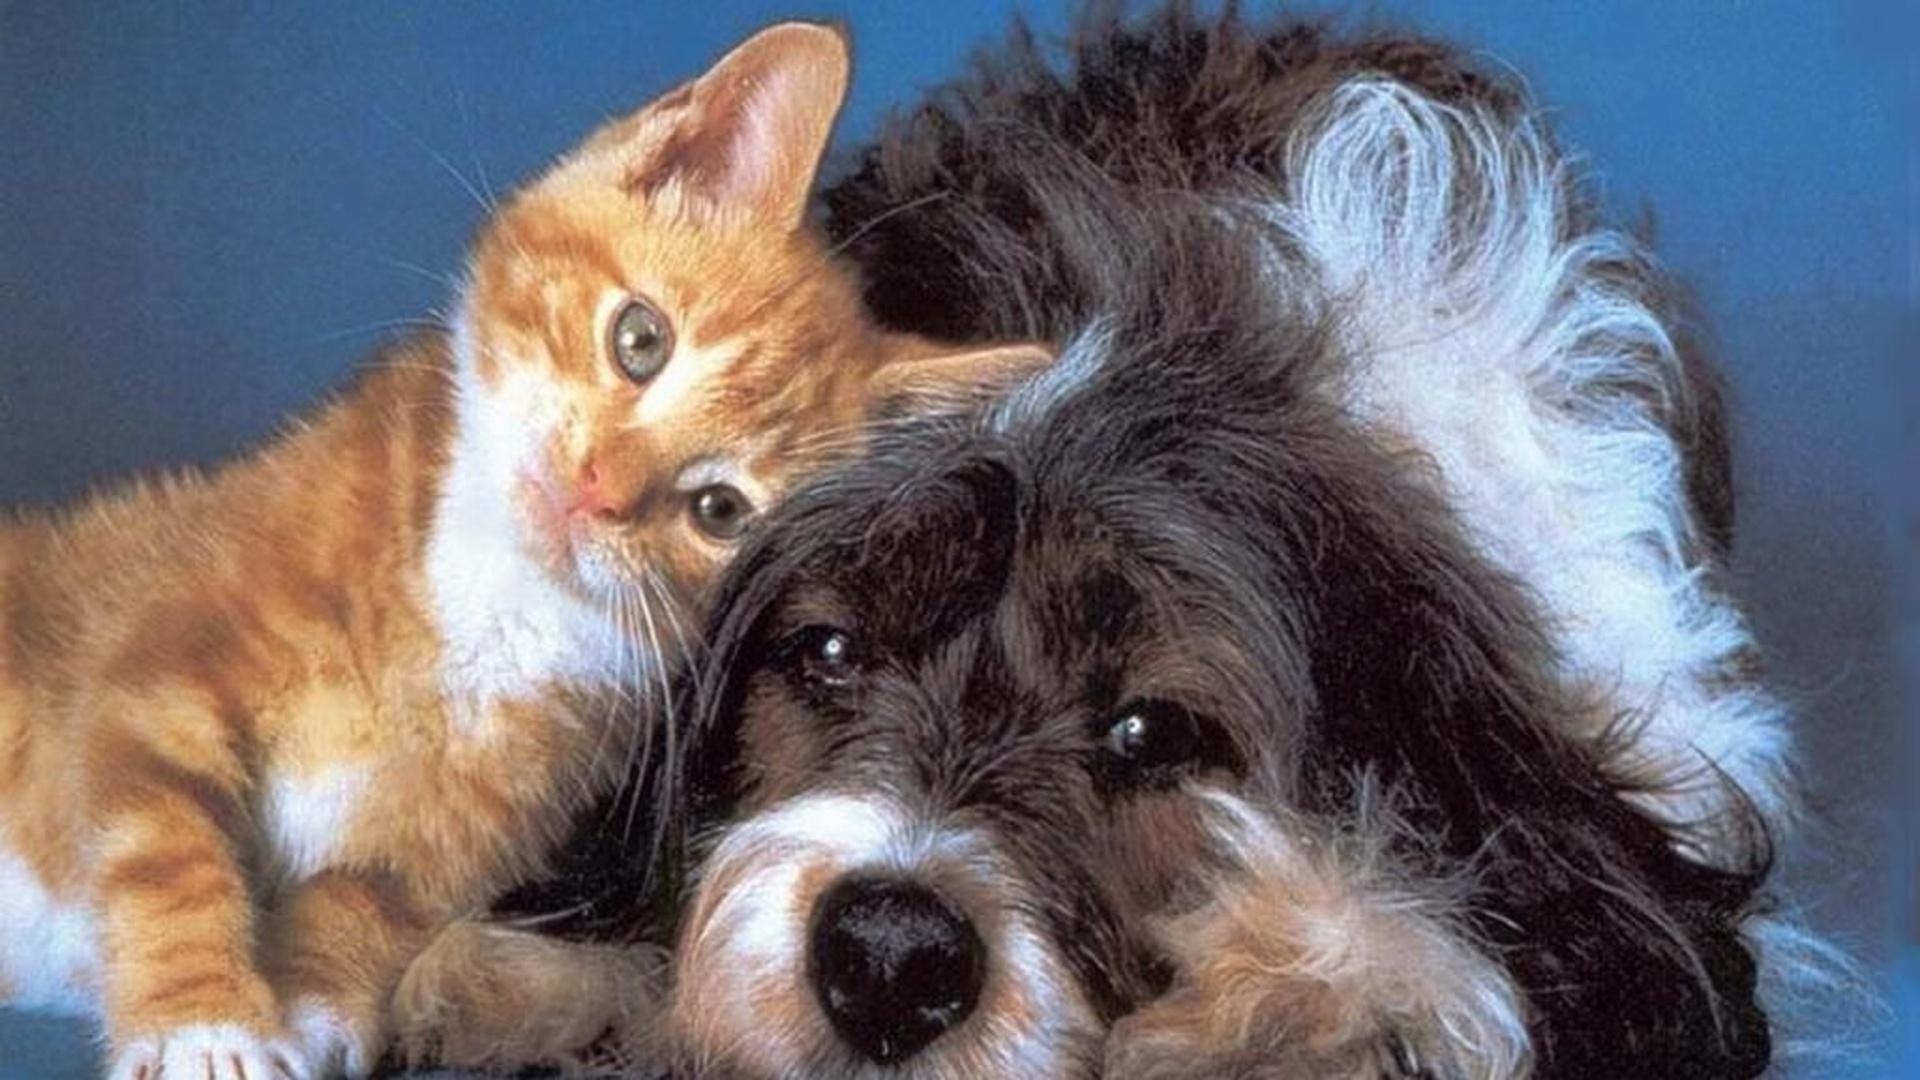 cat & dog wallpapers, pictures, images